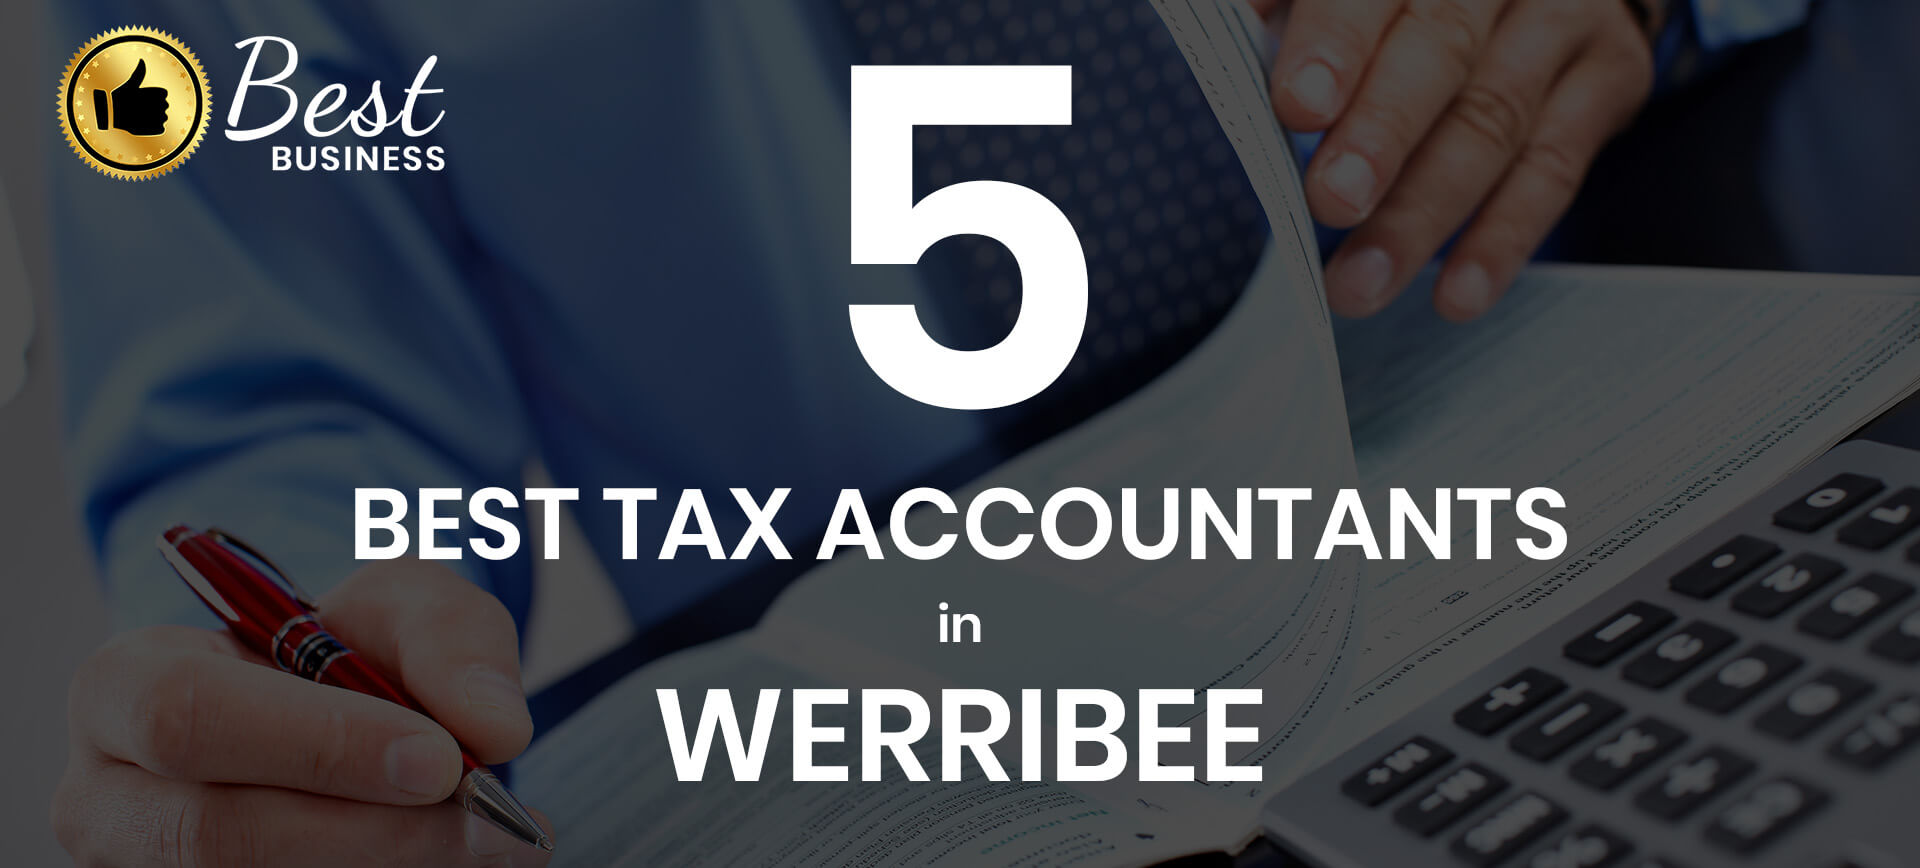 5 Best Tax Accountants in Werribee